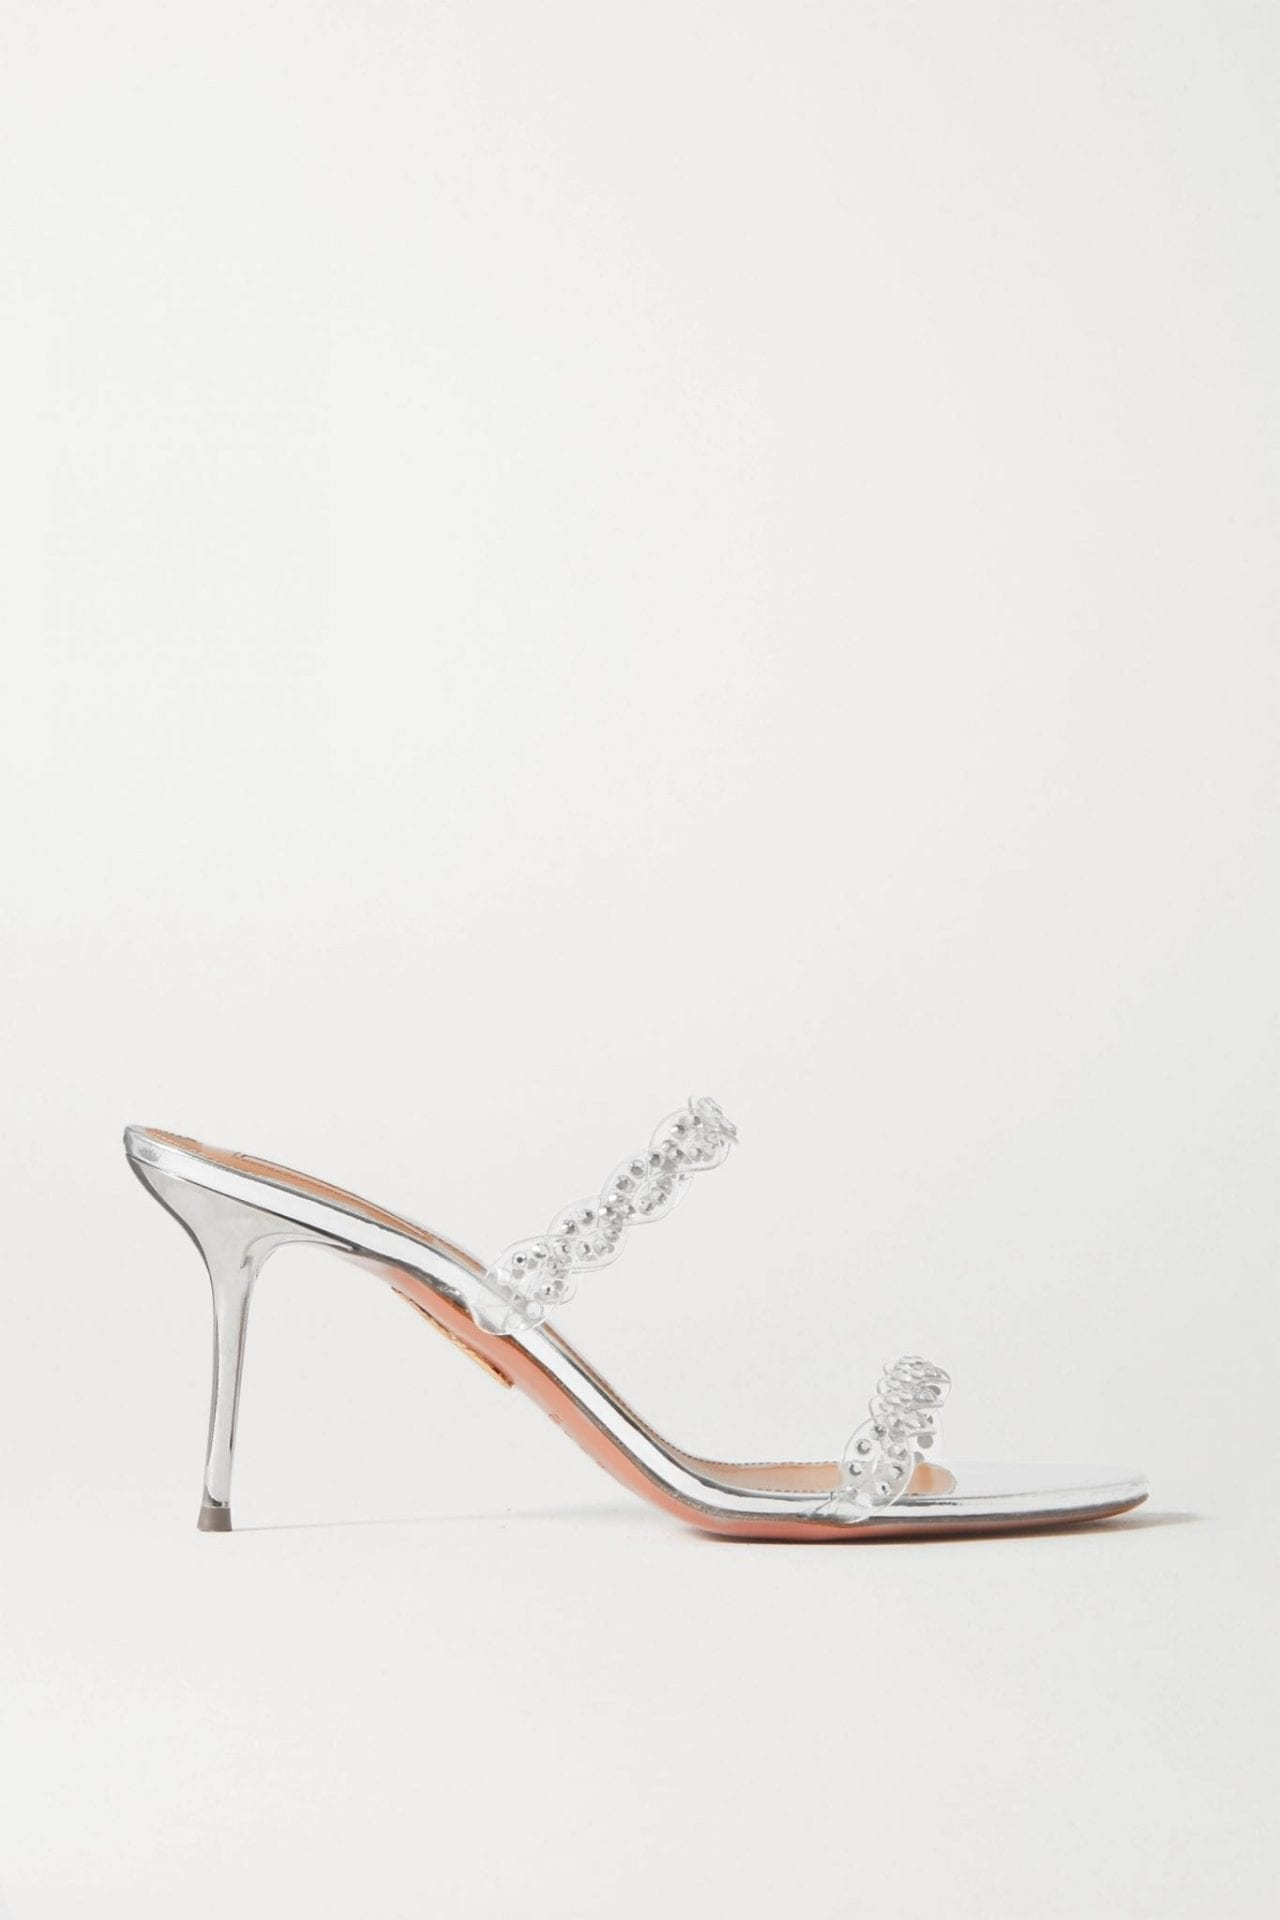 AQUAZZURA Heaven 75 Crystal-embellished Pvc And Metallic Leather Mules